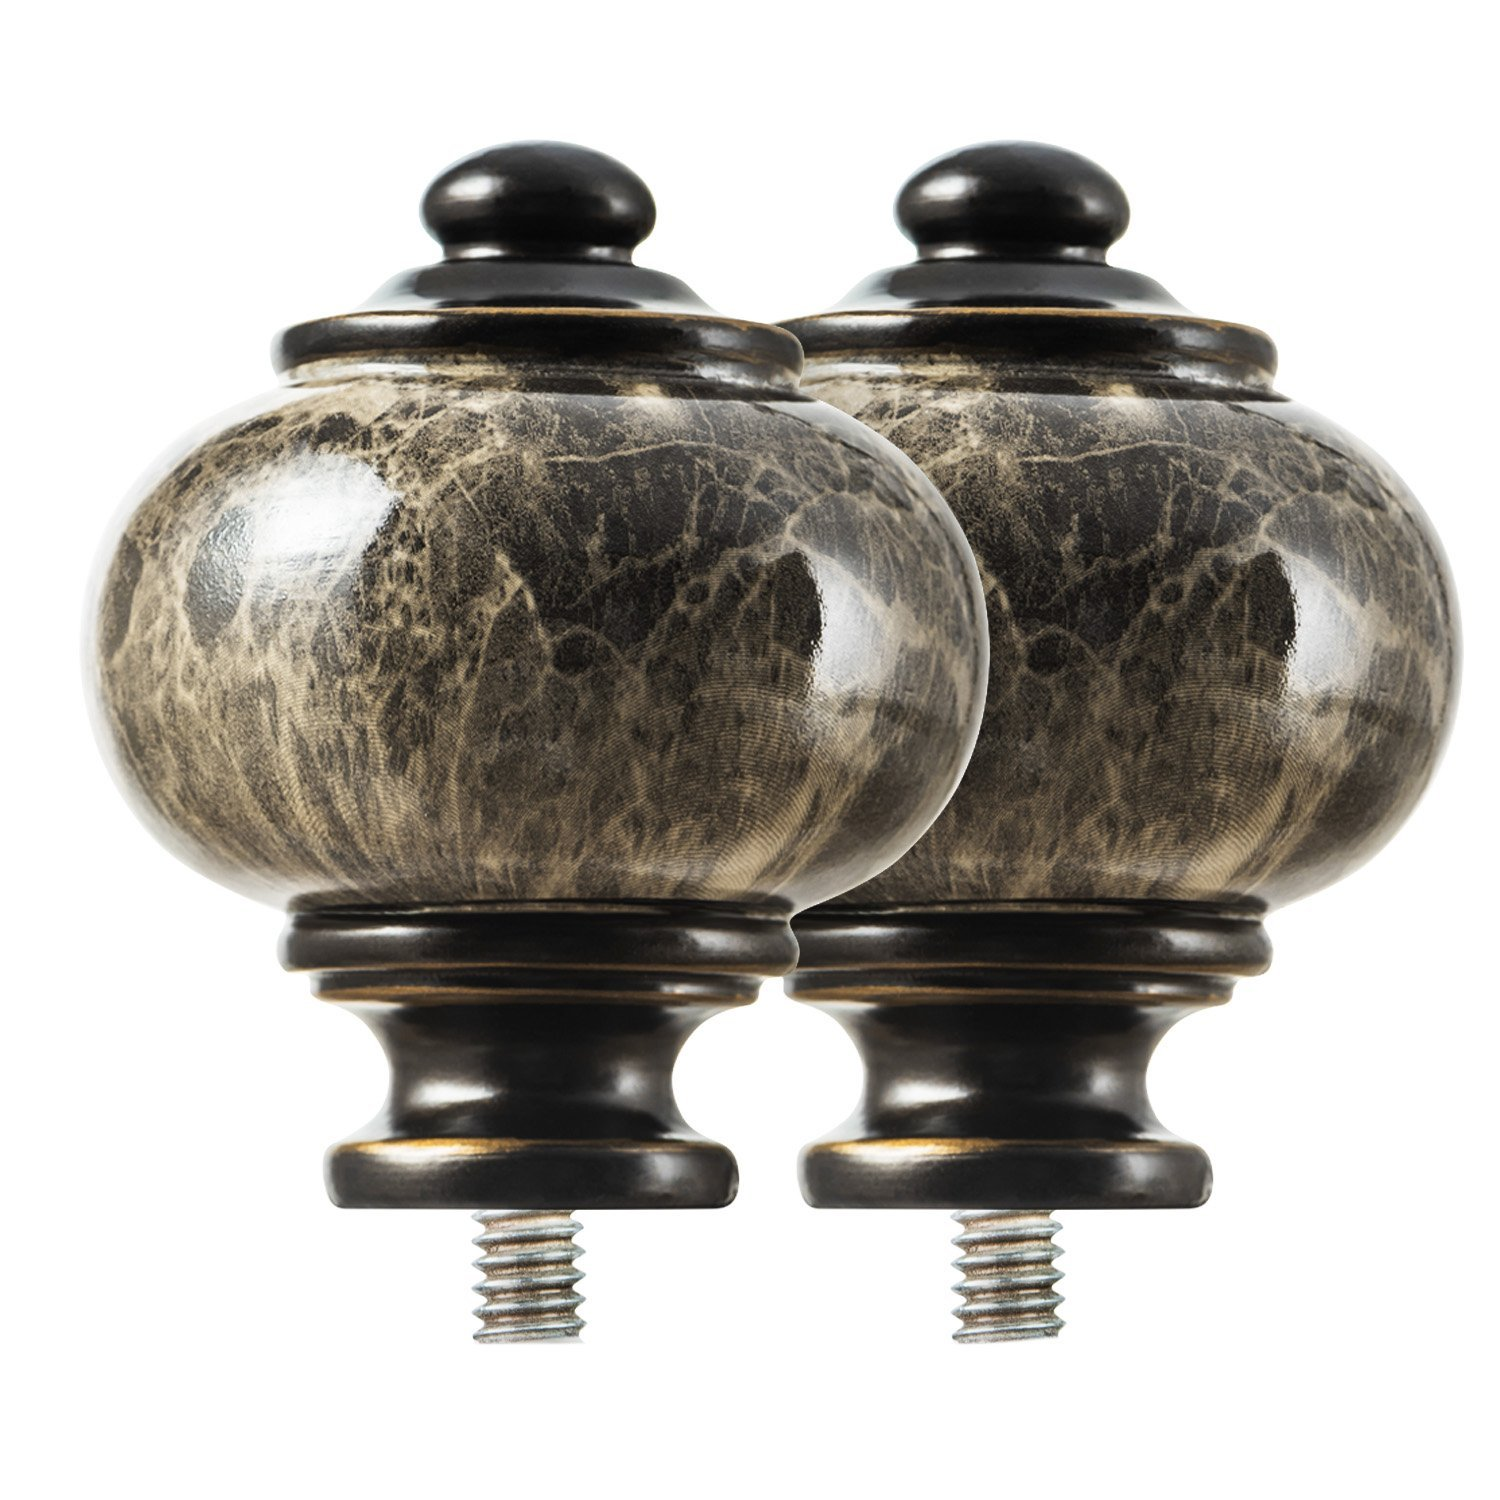 2pcs KAMANINA Netted Texture Replacement Finials for 1 Inch Curtain rods M6 Standard Screw Drapery Rod Finials Bronze